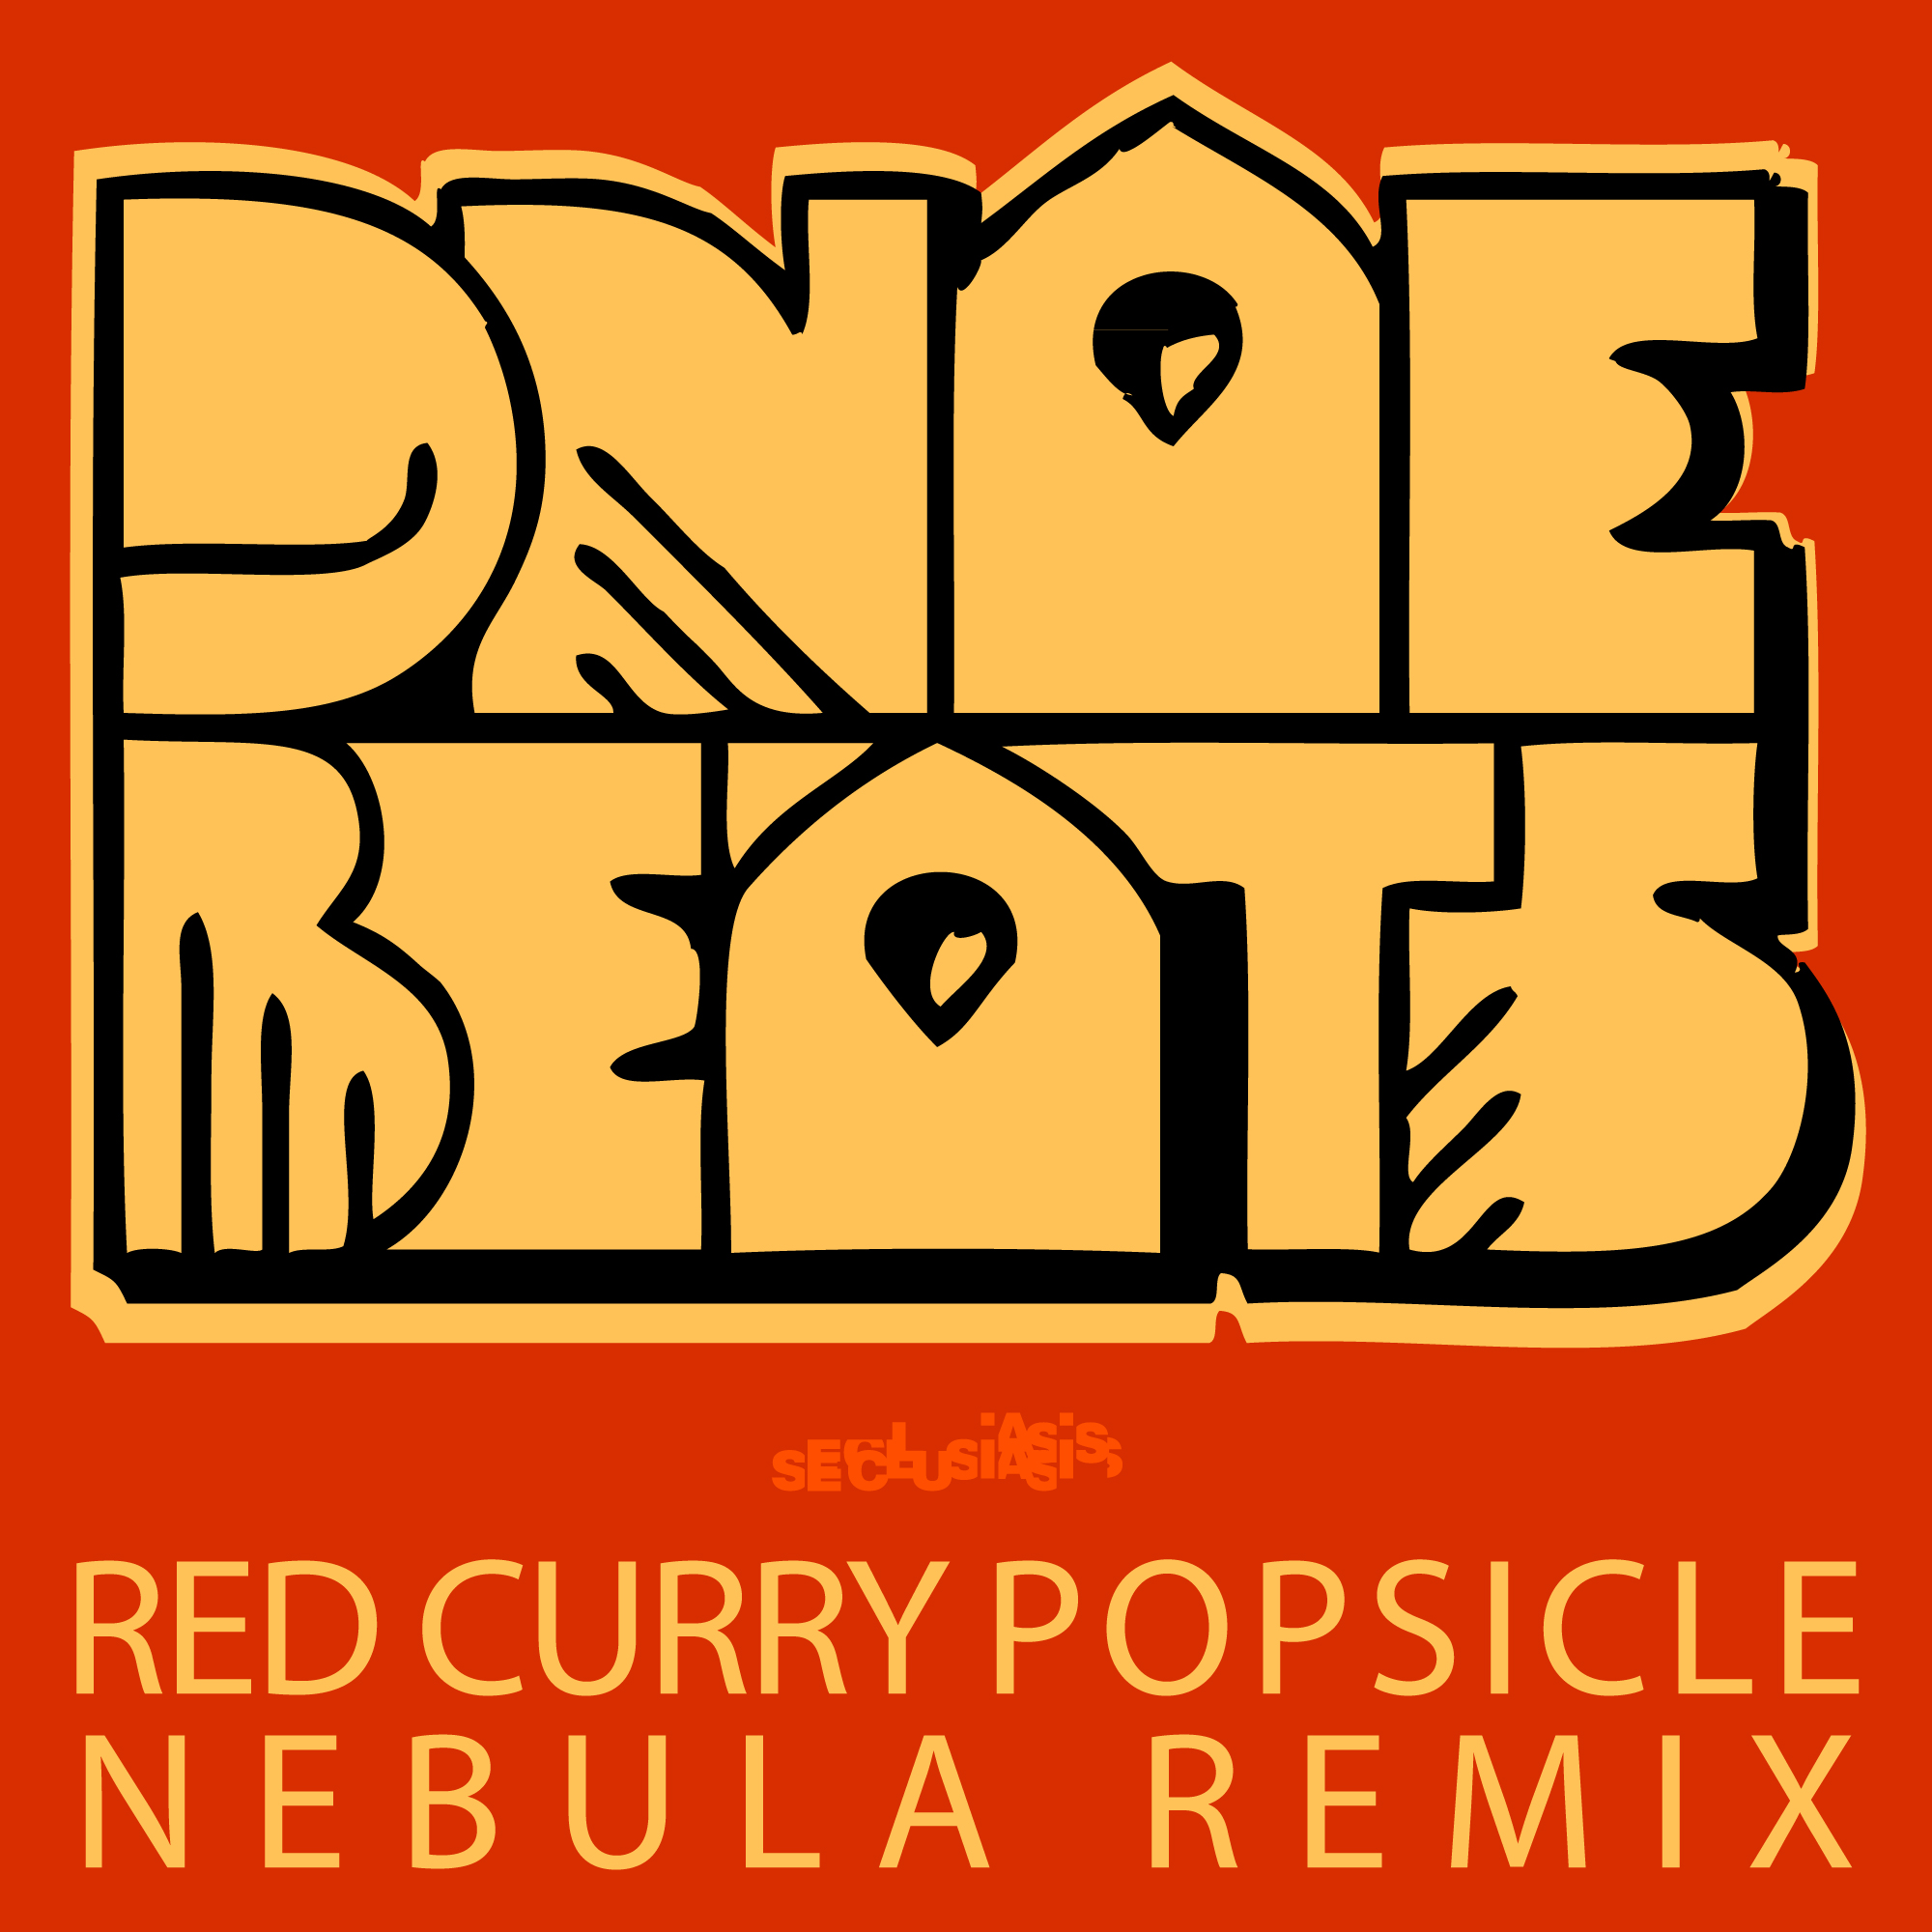 Various deep house stories vol 10 at juno download - In Conjunction With Juno Download Seclusiasis Held A Remix Competition For The Song Red Curry Popsicle Off Of Dnaebeats Tangled In Technology Album